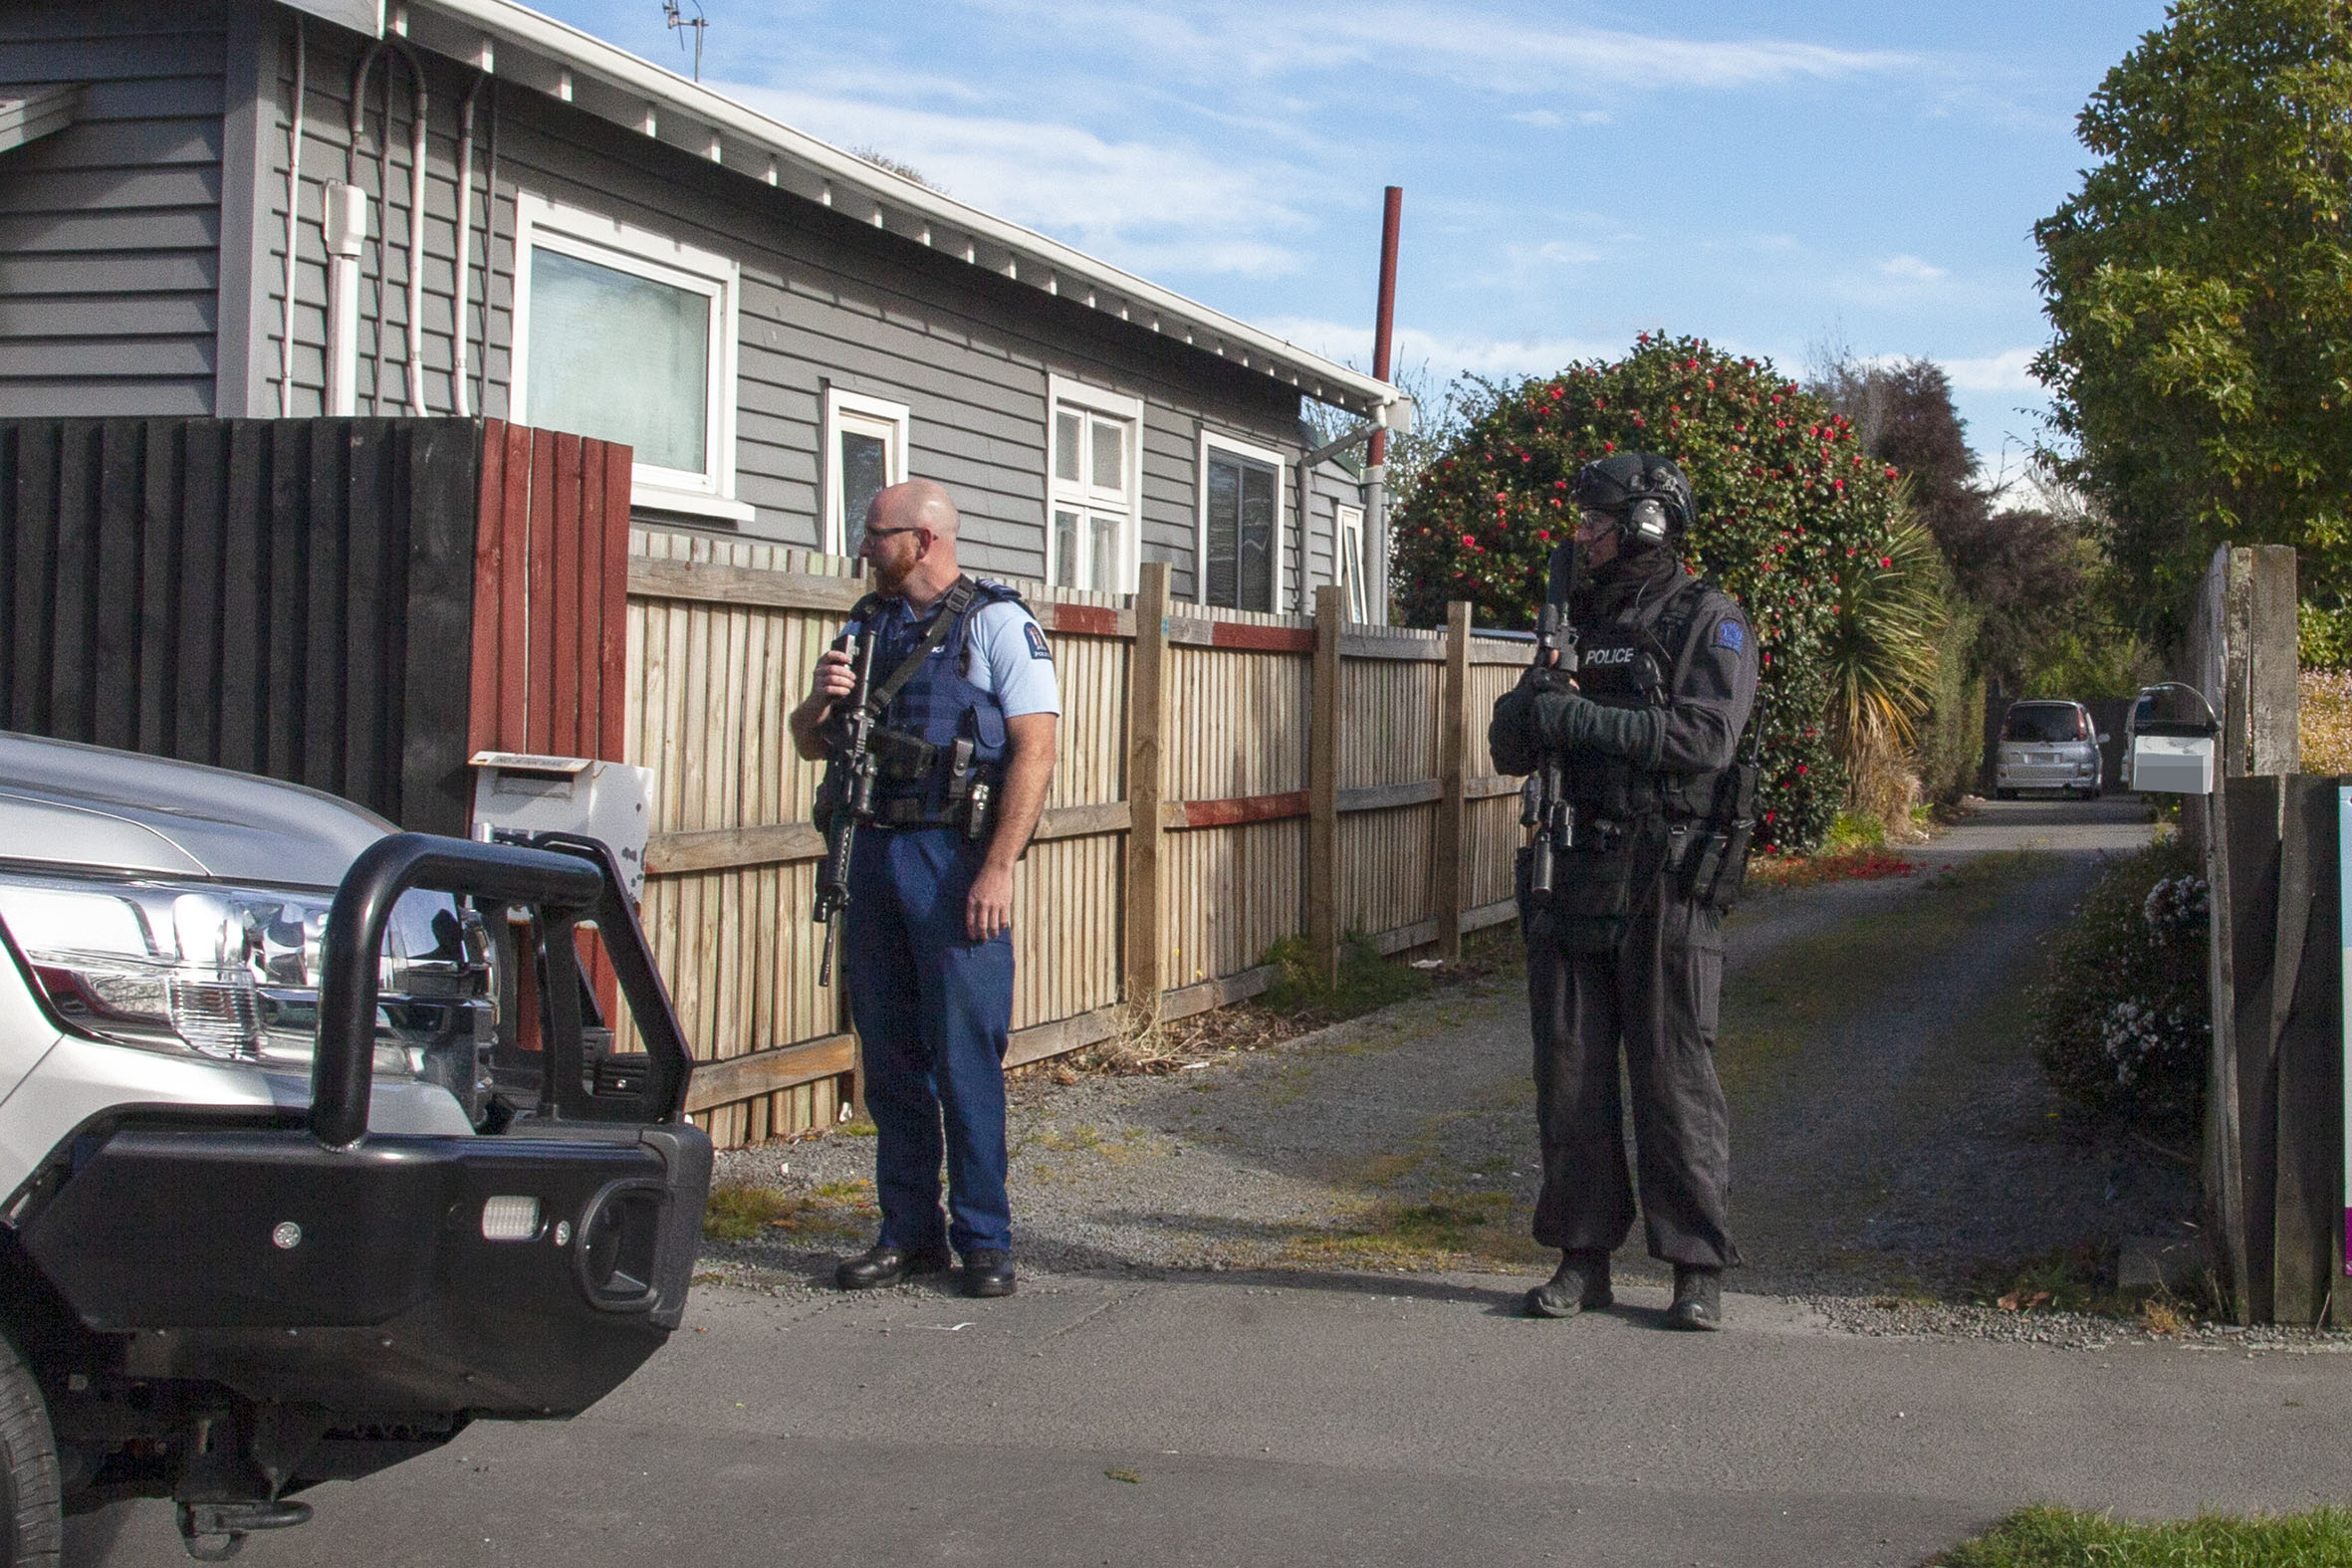 Police and a member of the AOS on Buckleys Rd. Photo: Geoff Sloan